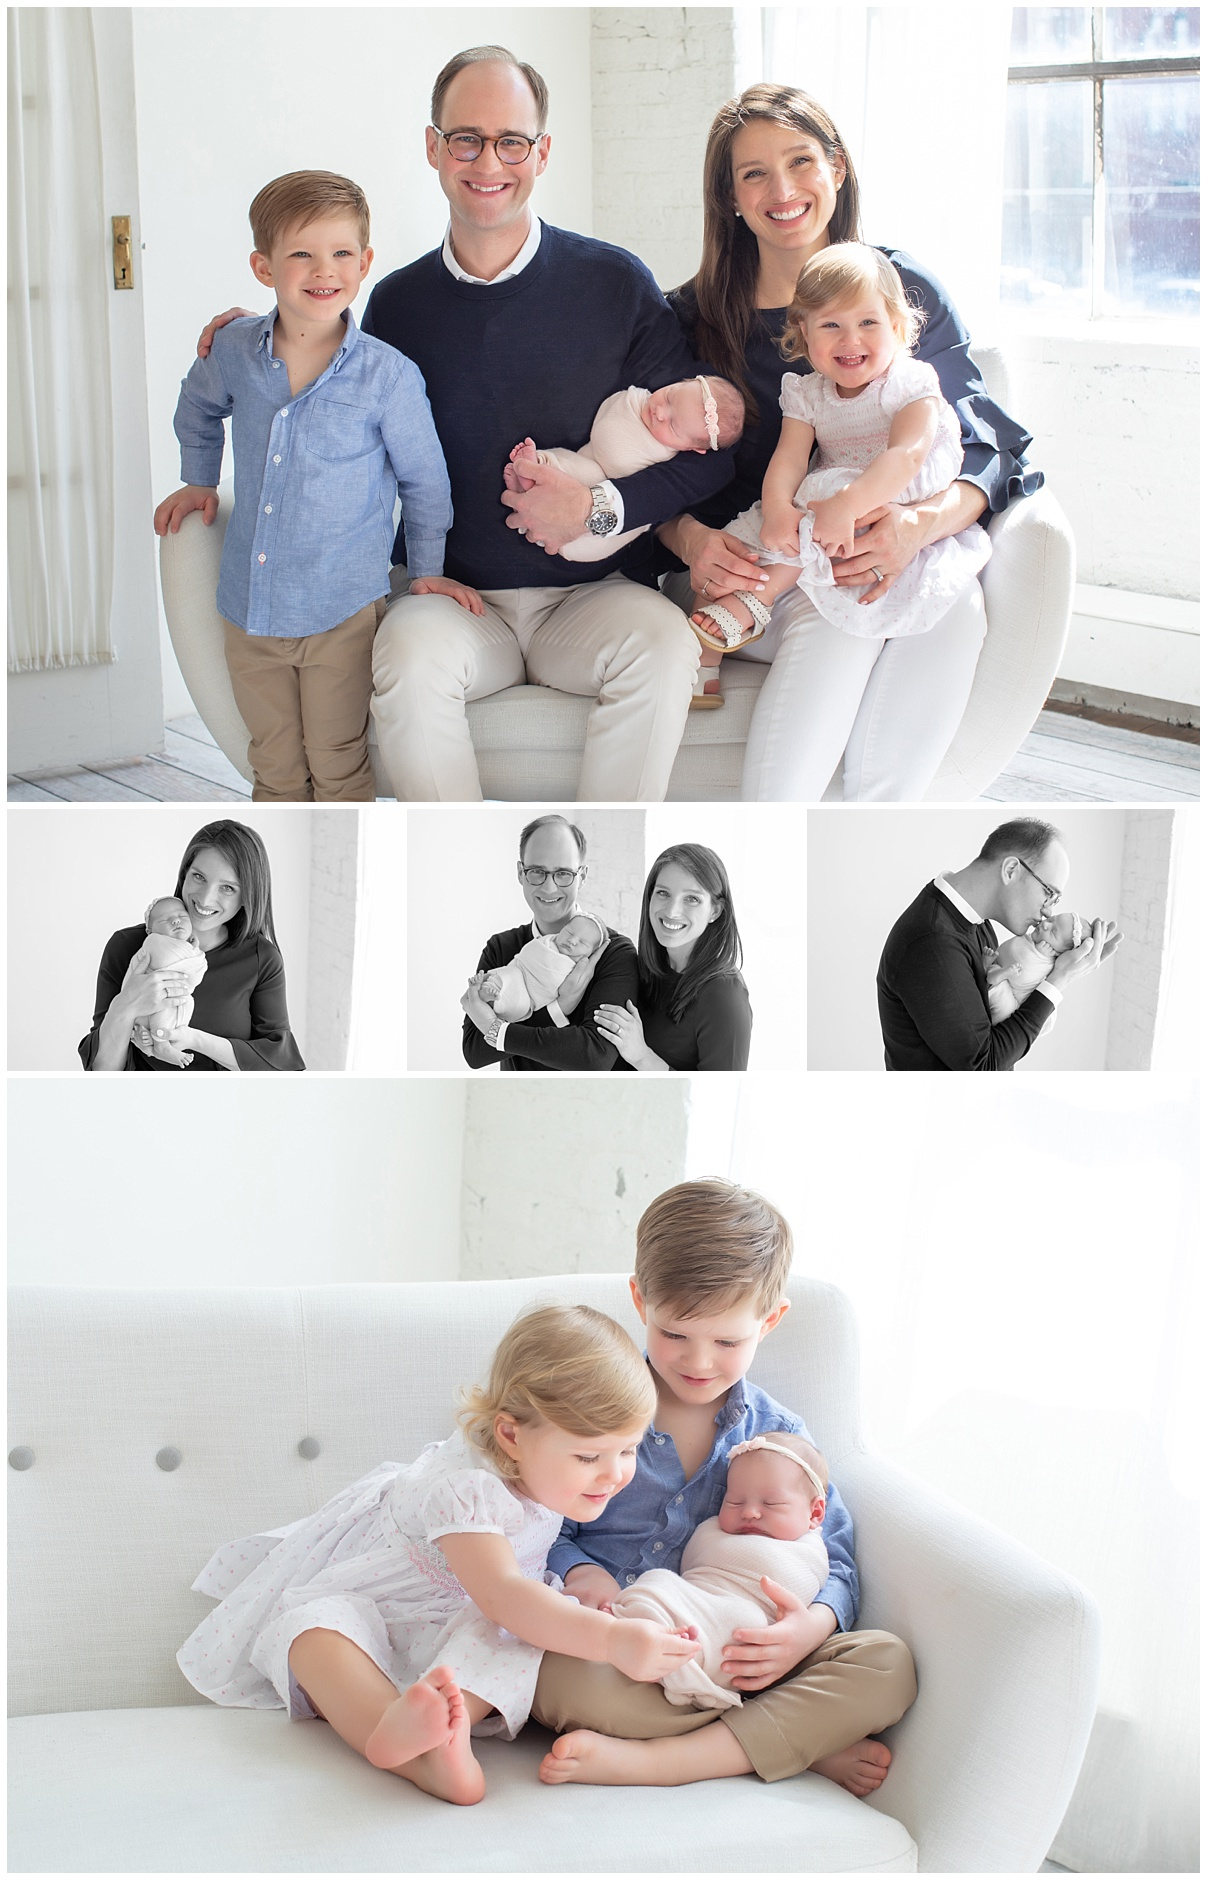 minneapolis_family_and_newborn_portrait_session.jpg